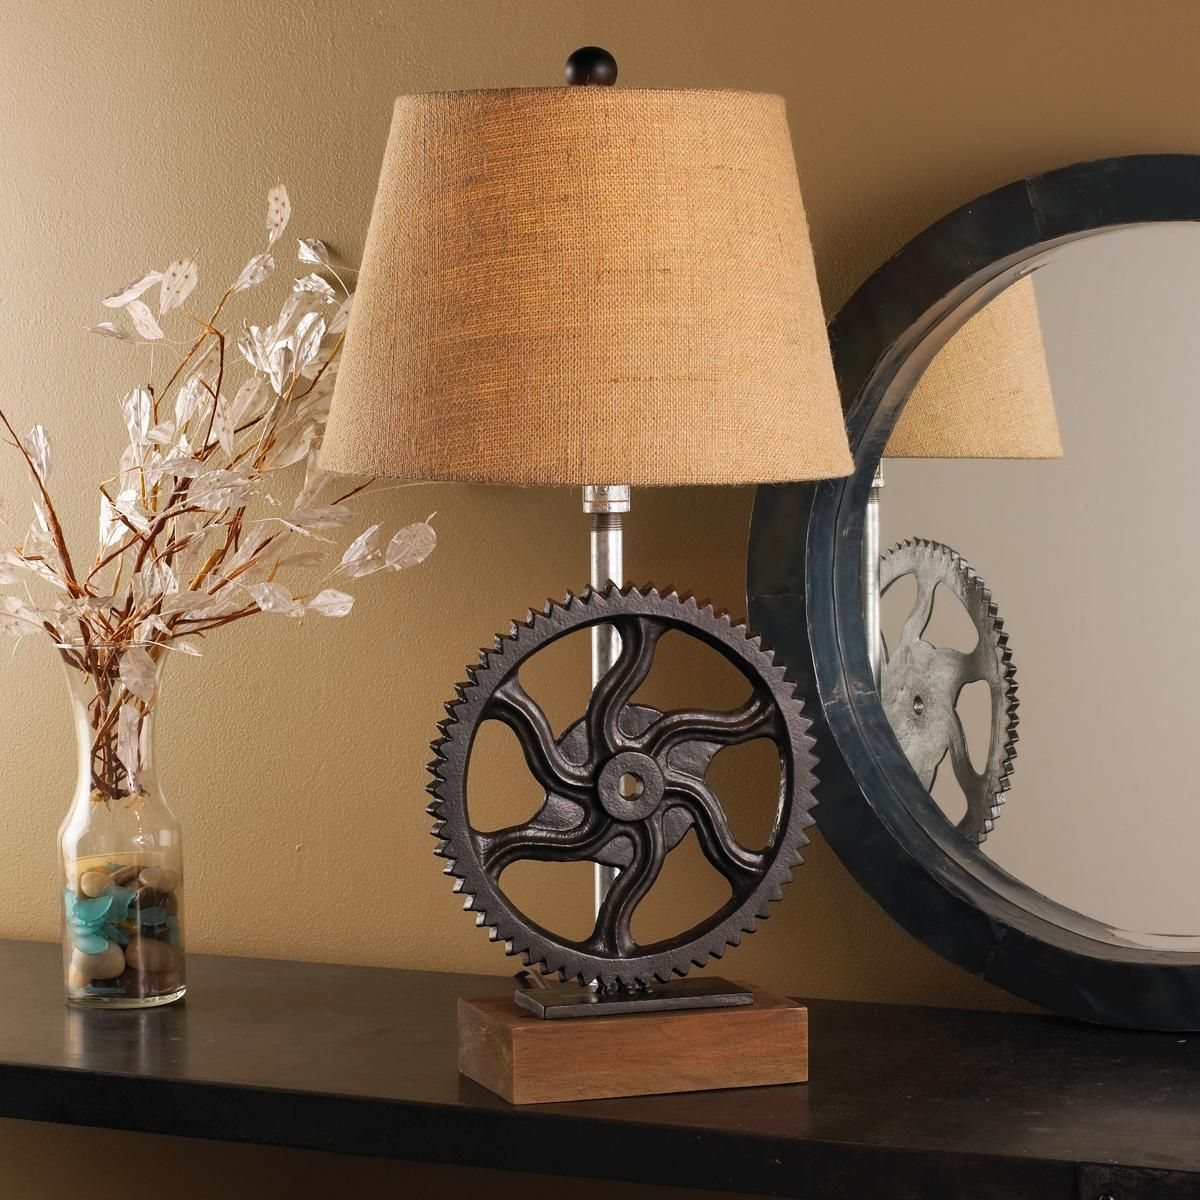 Cast iron gear table lamp great industrial look on reclaimed cast iron gear table lamp great industrial look on reclaimed wood base with burlap shade arubaitofo Image collections